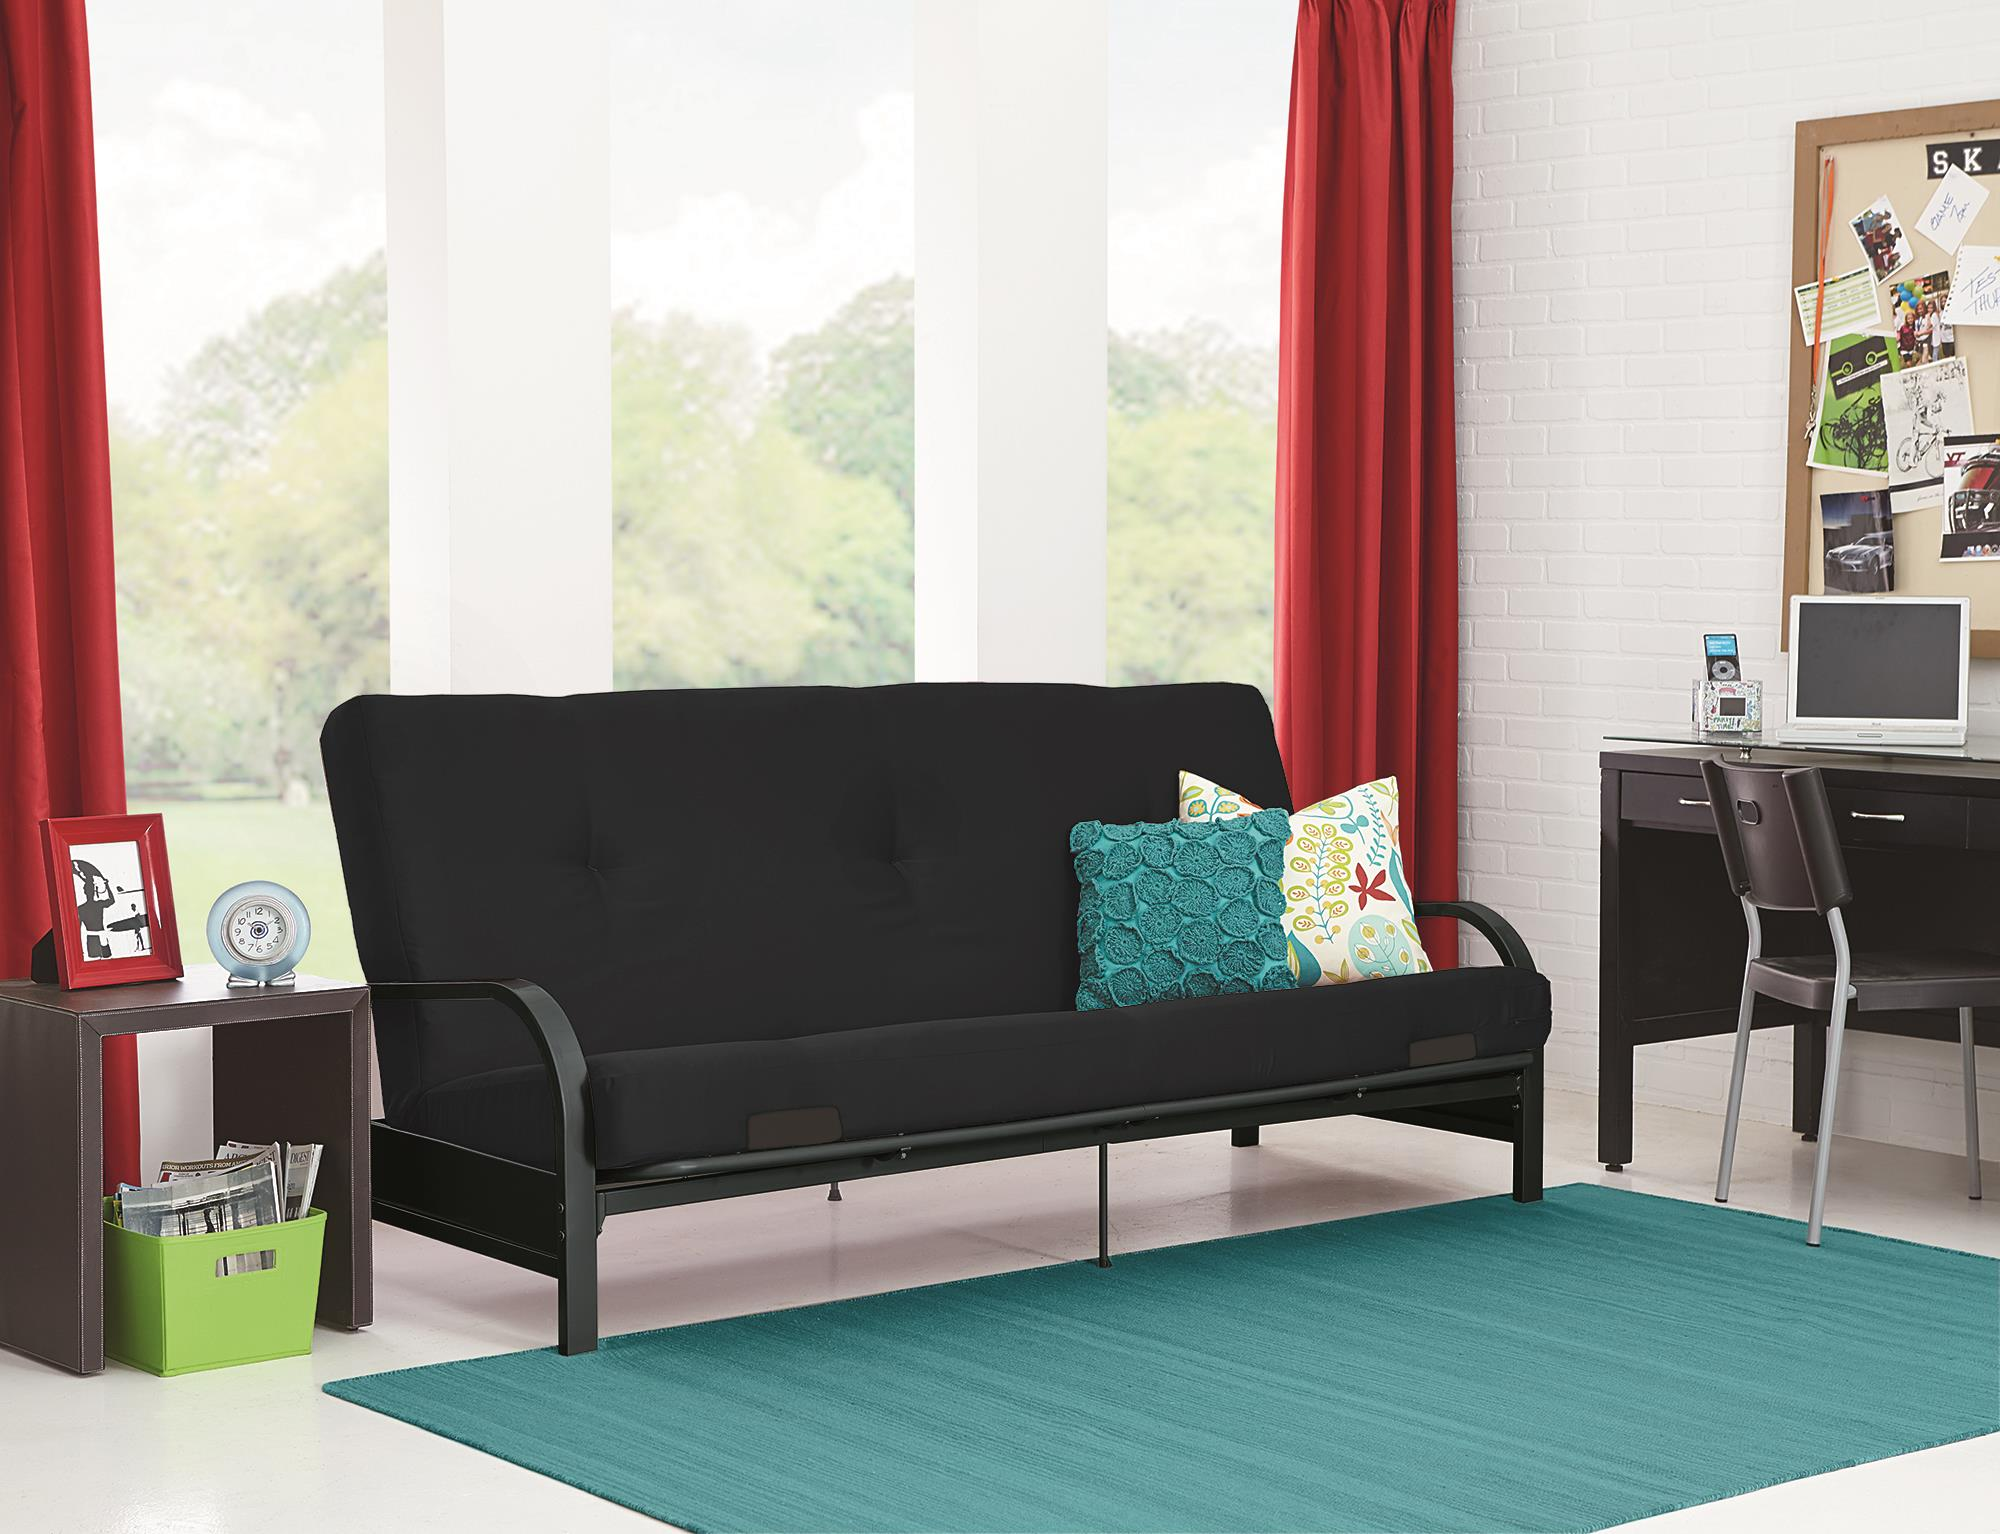 Mainstays Black Metal Arm Futon With